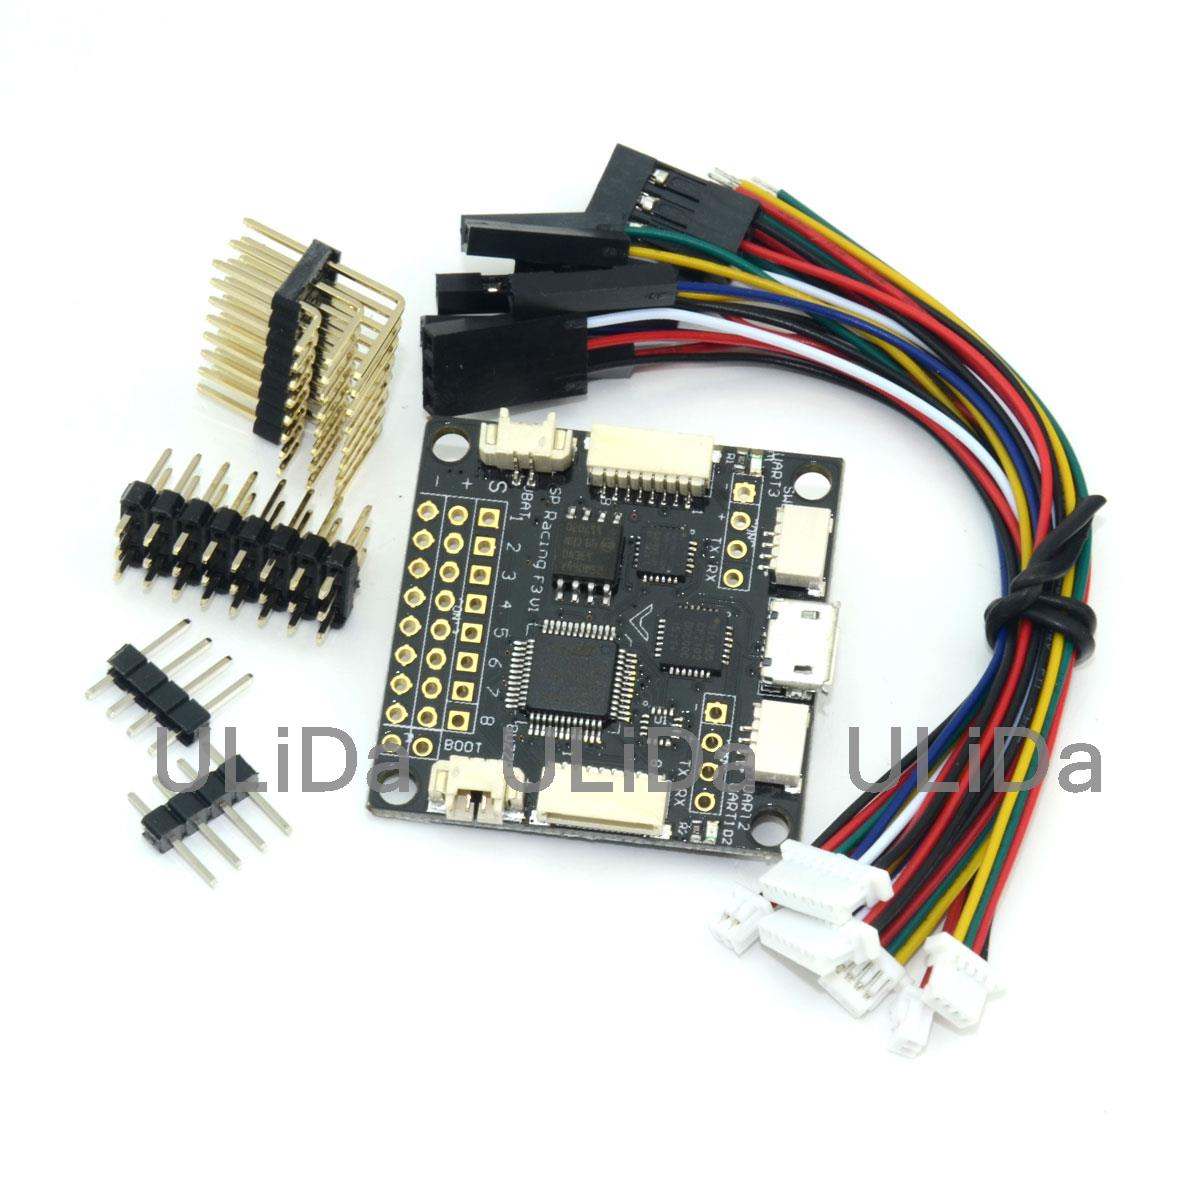 medium resolution of sp racing f3 acro flight controller board fc for fpv quadcopter multicopter in parts accessories from toys hobbies on aliexpress com alibaba group